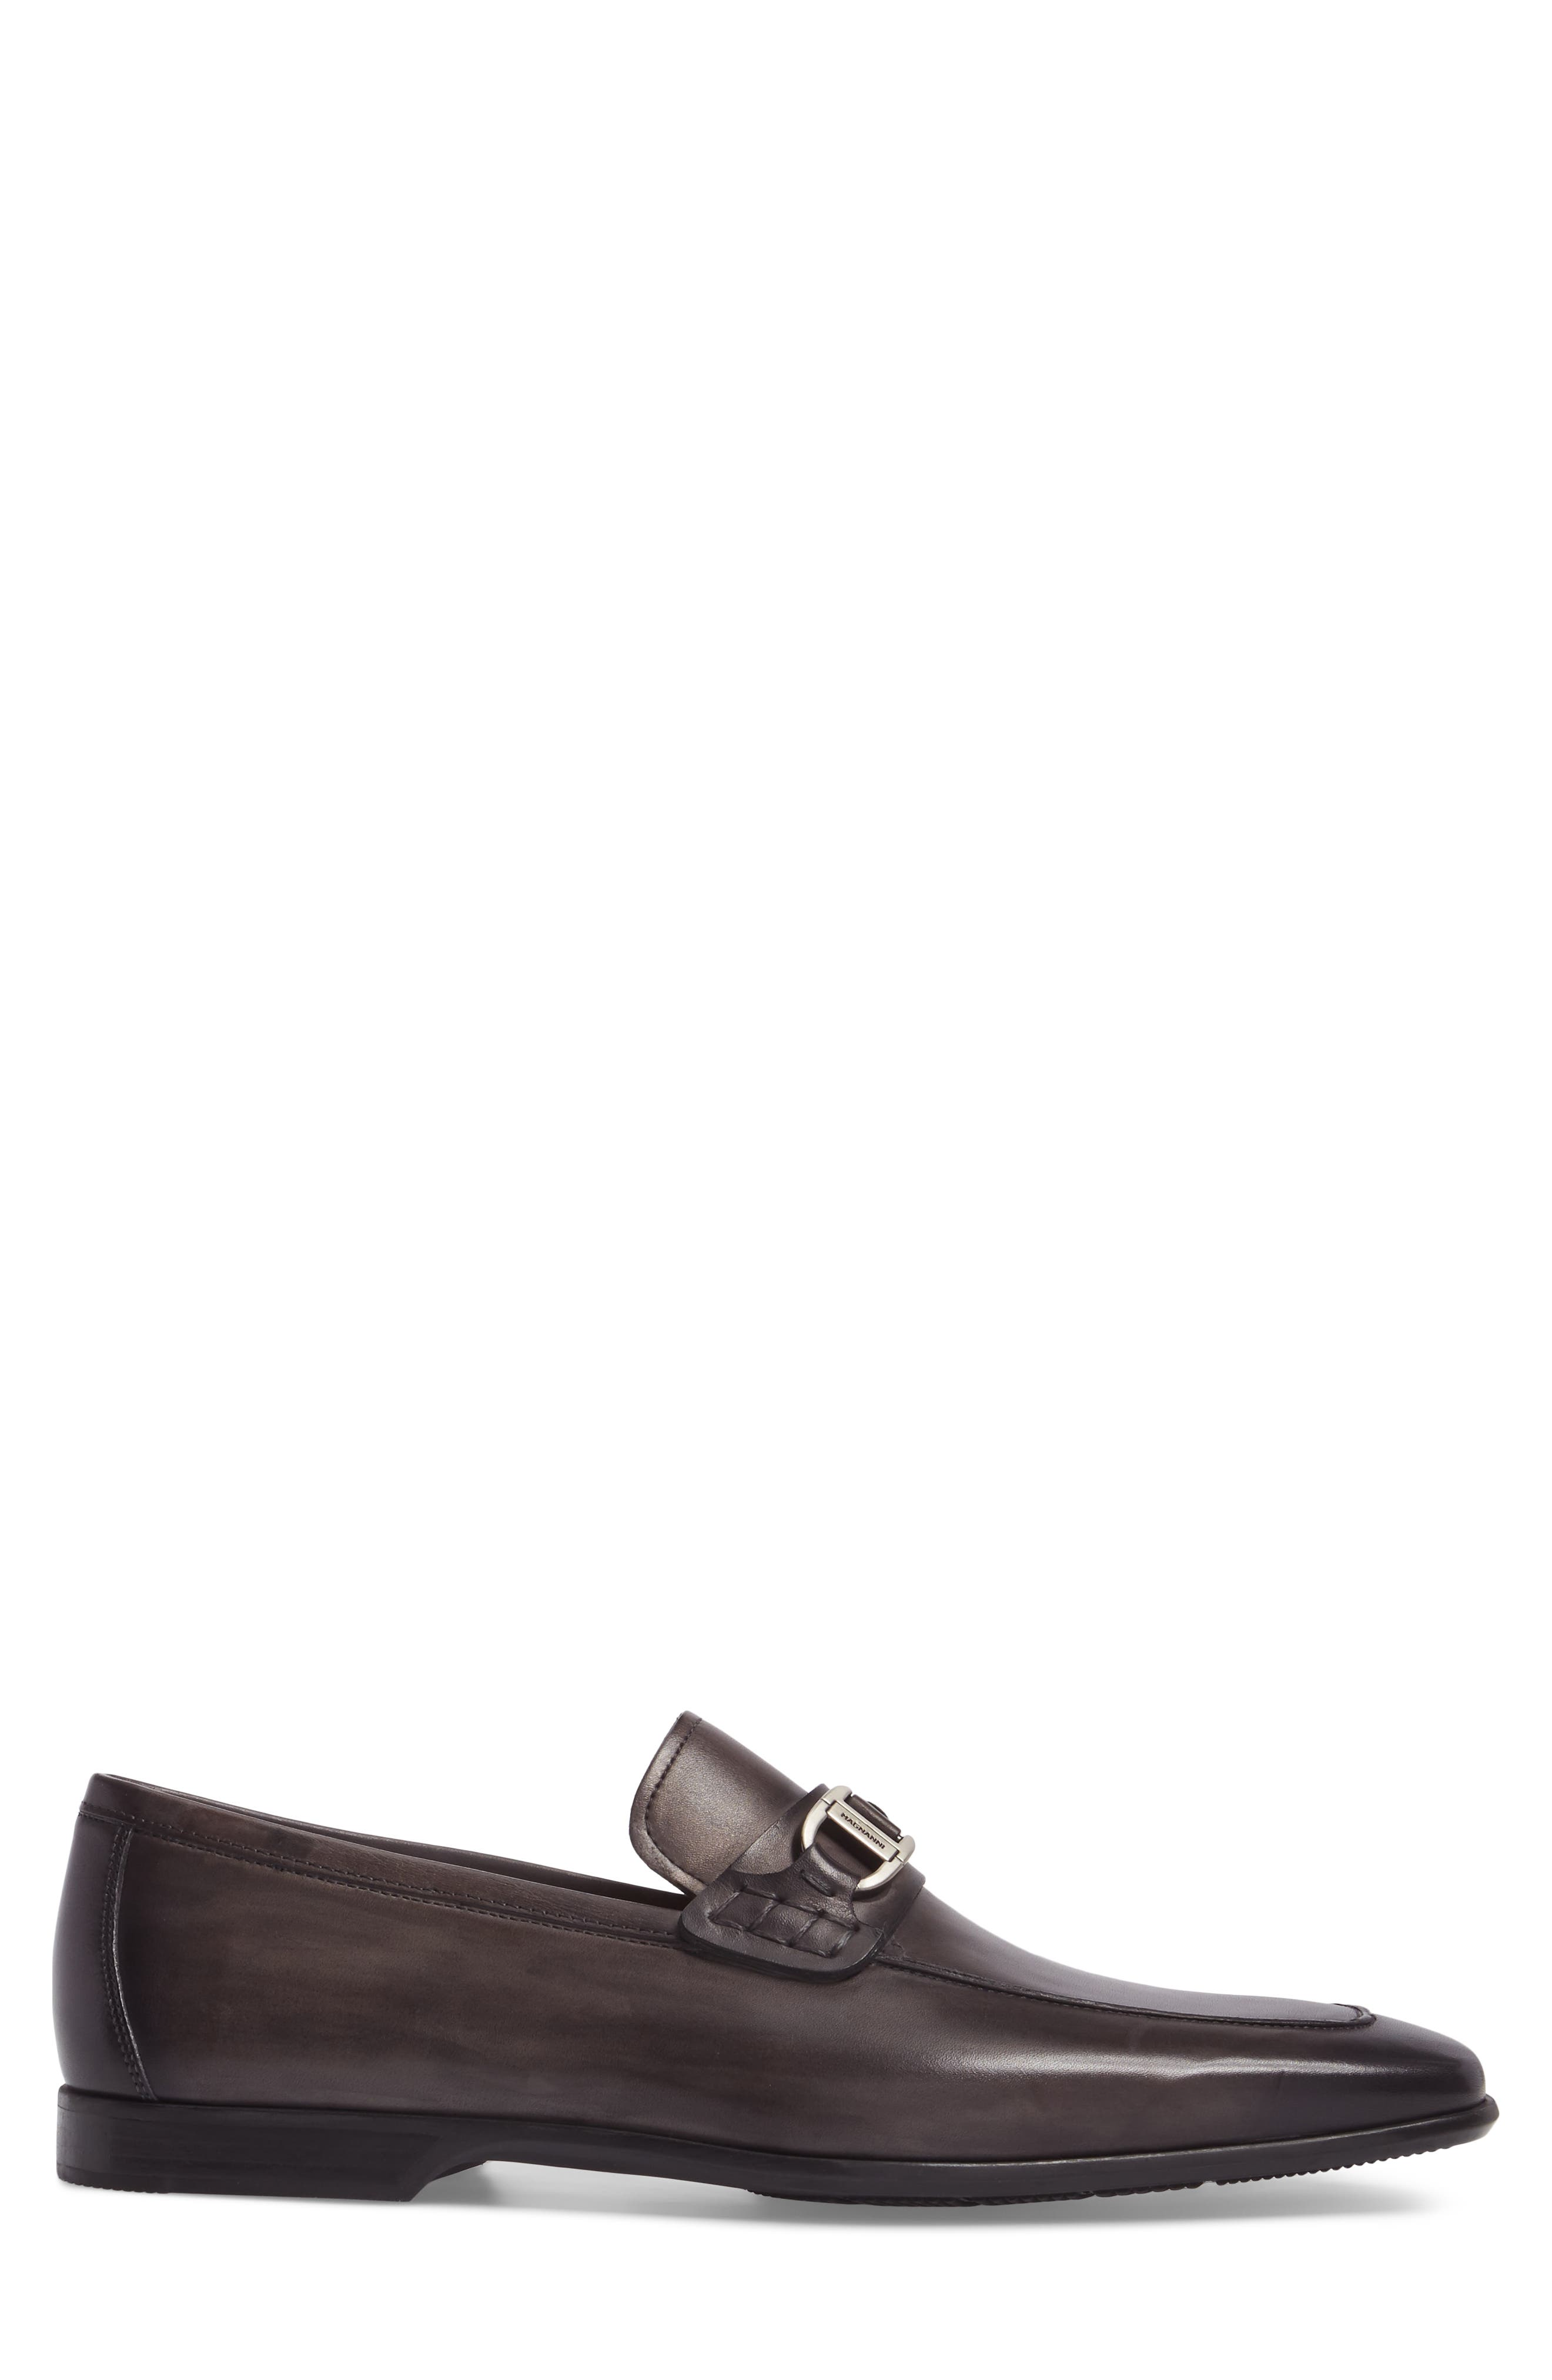 Rufino Bit Loafer,                             Alternate thumbnail 3, color,                             Grey Leather